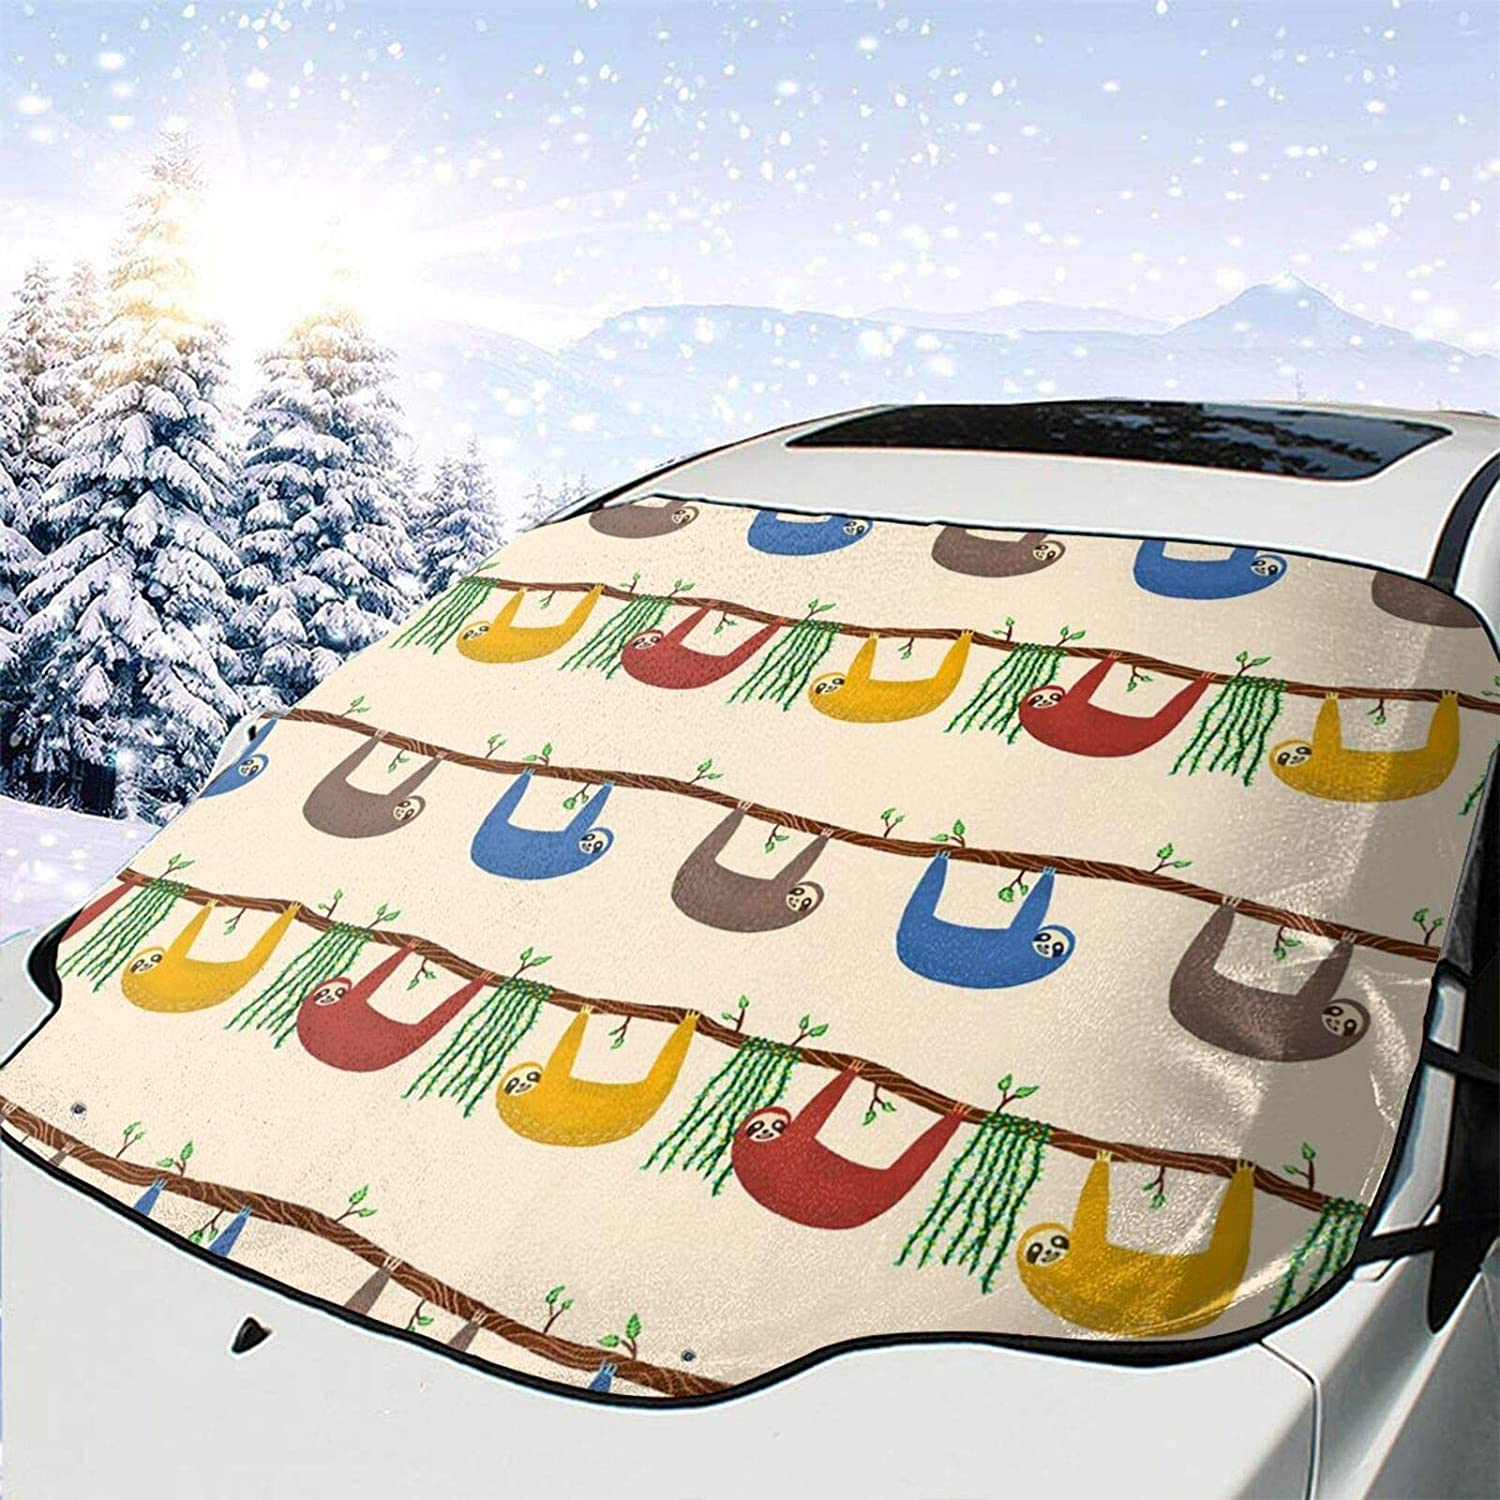 Car Front Window Safety and trust Windshields Snow Colored-Sloth Cover Guard Luxury goods Heat